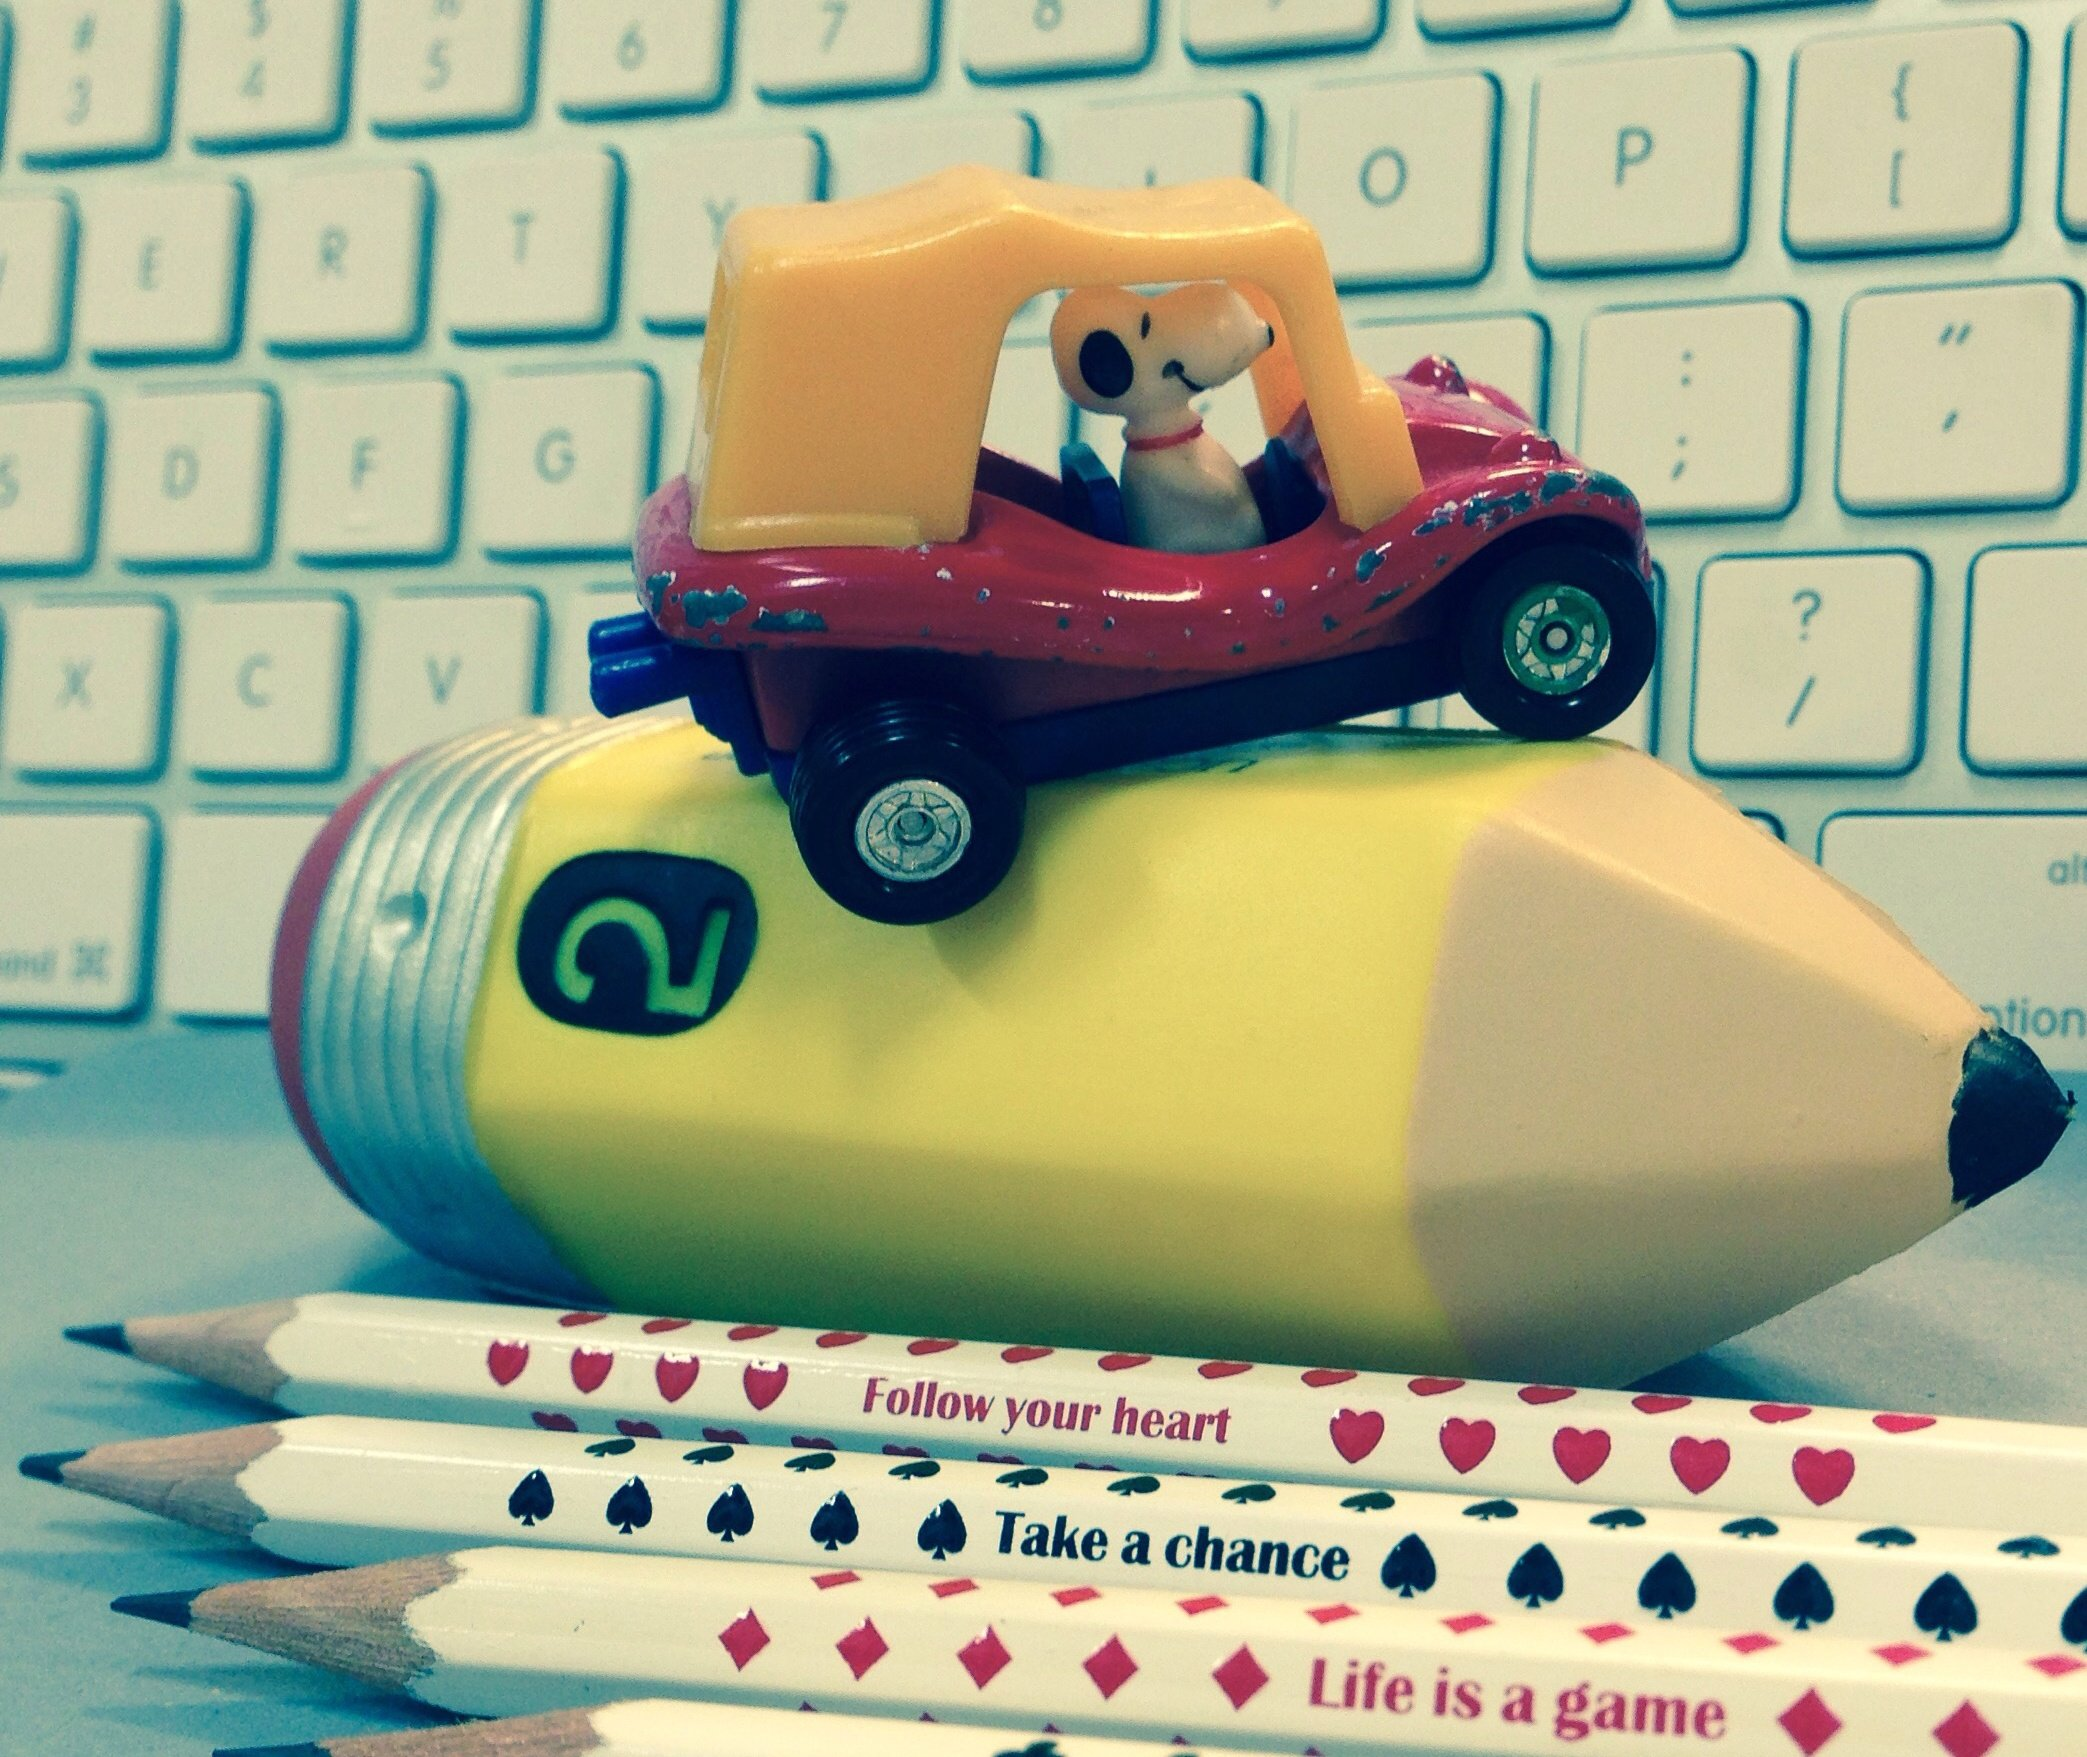 Vintage snoopy in metal toy car atop a large toy pencil